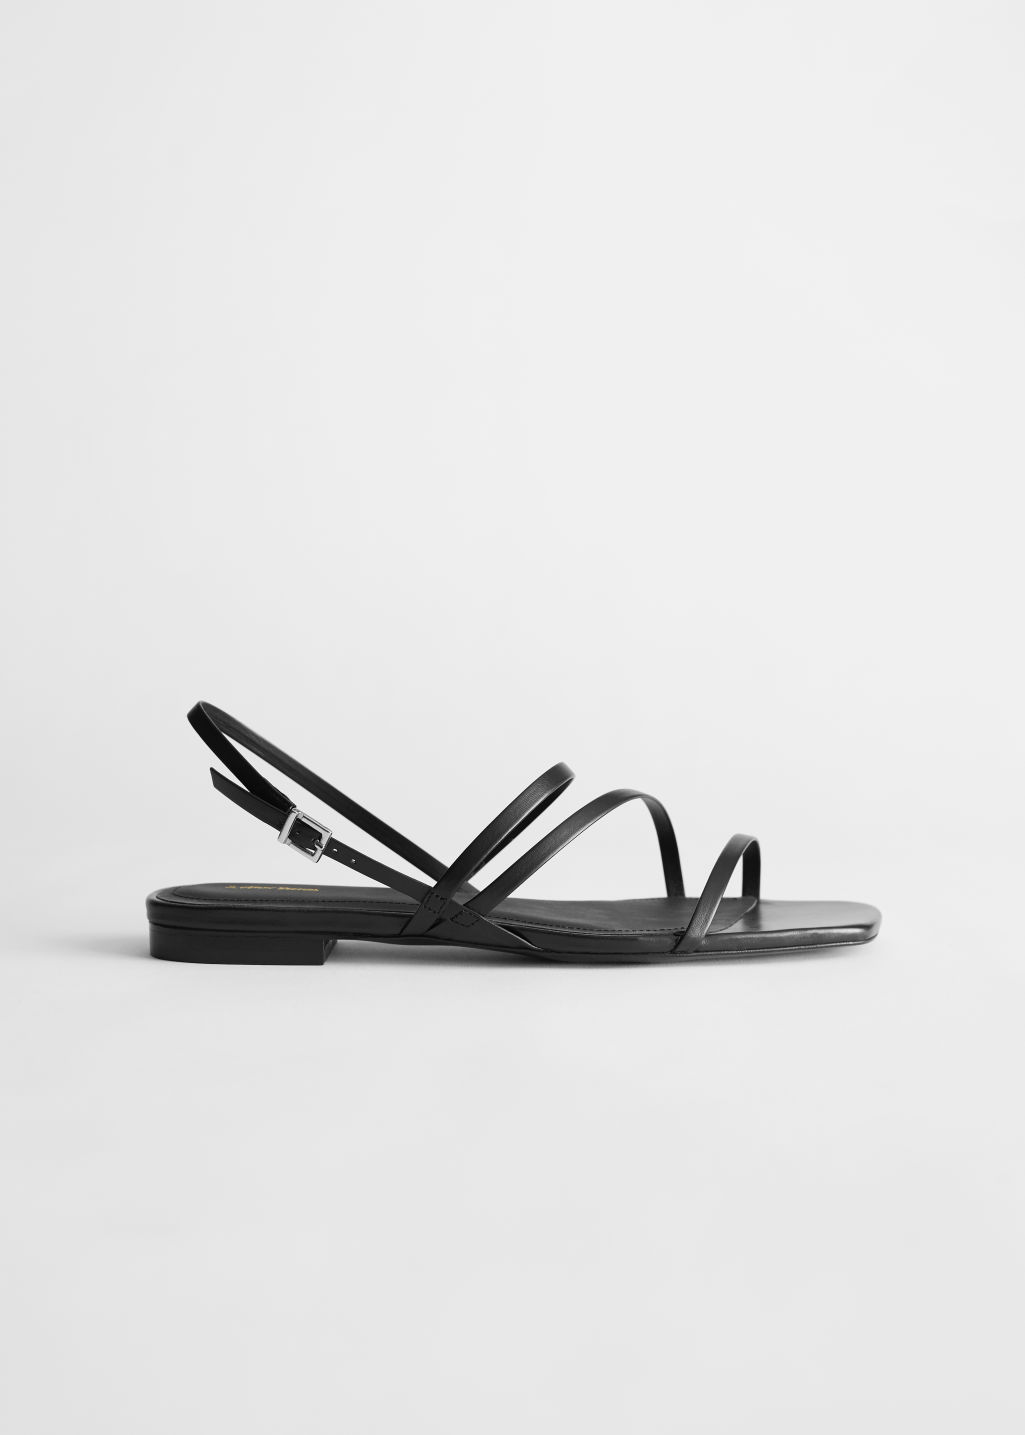 StillLife Left Image of Stories Strappy Leather Slingback Sandals in Black